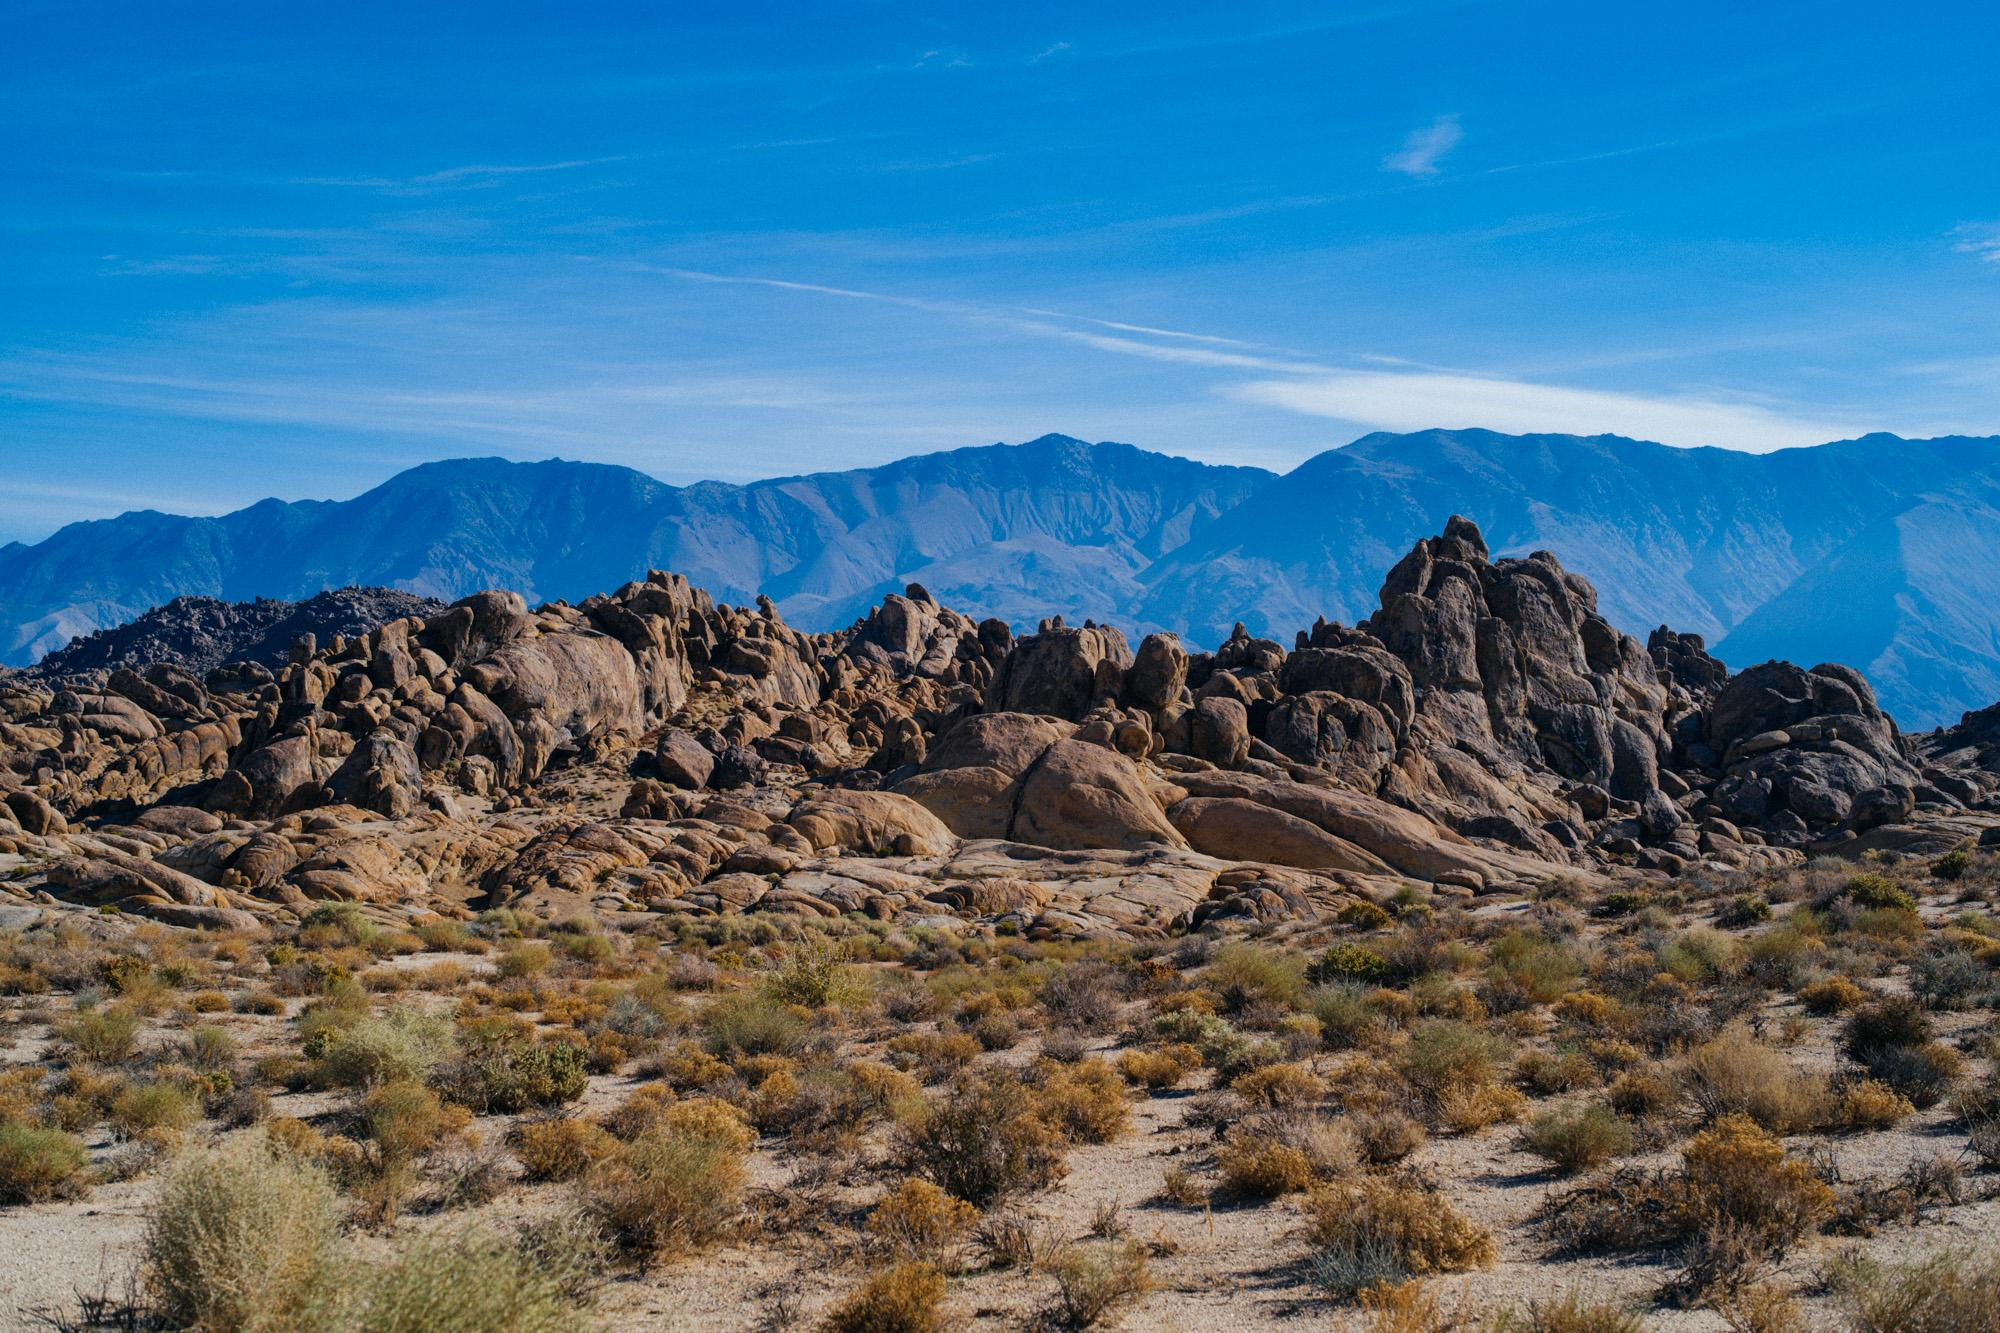 Morning from Alabama Hills